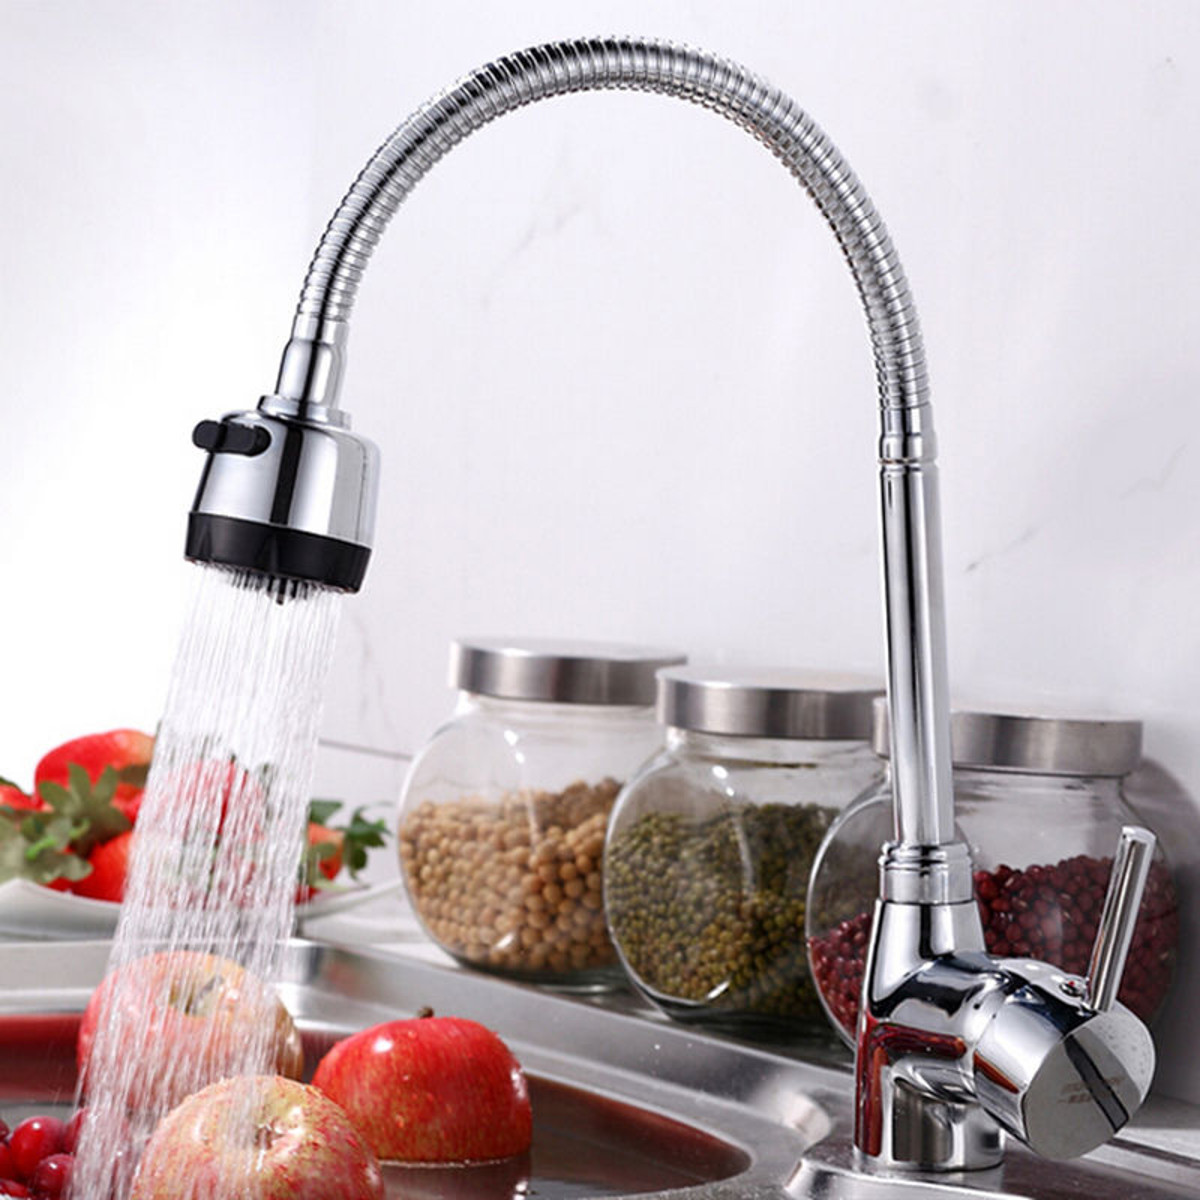 Solid Brass 360Rotatable Pull Out Kitchen Spray Basin Faucet Mixer Tap Spout Single Handle Sink Adjustable Spout Deck Mounted